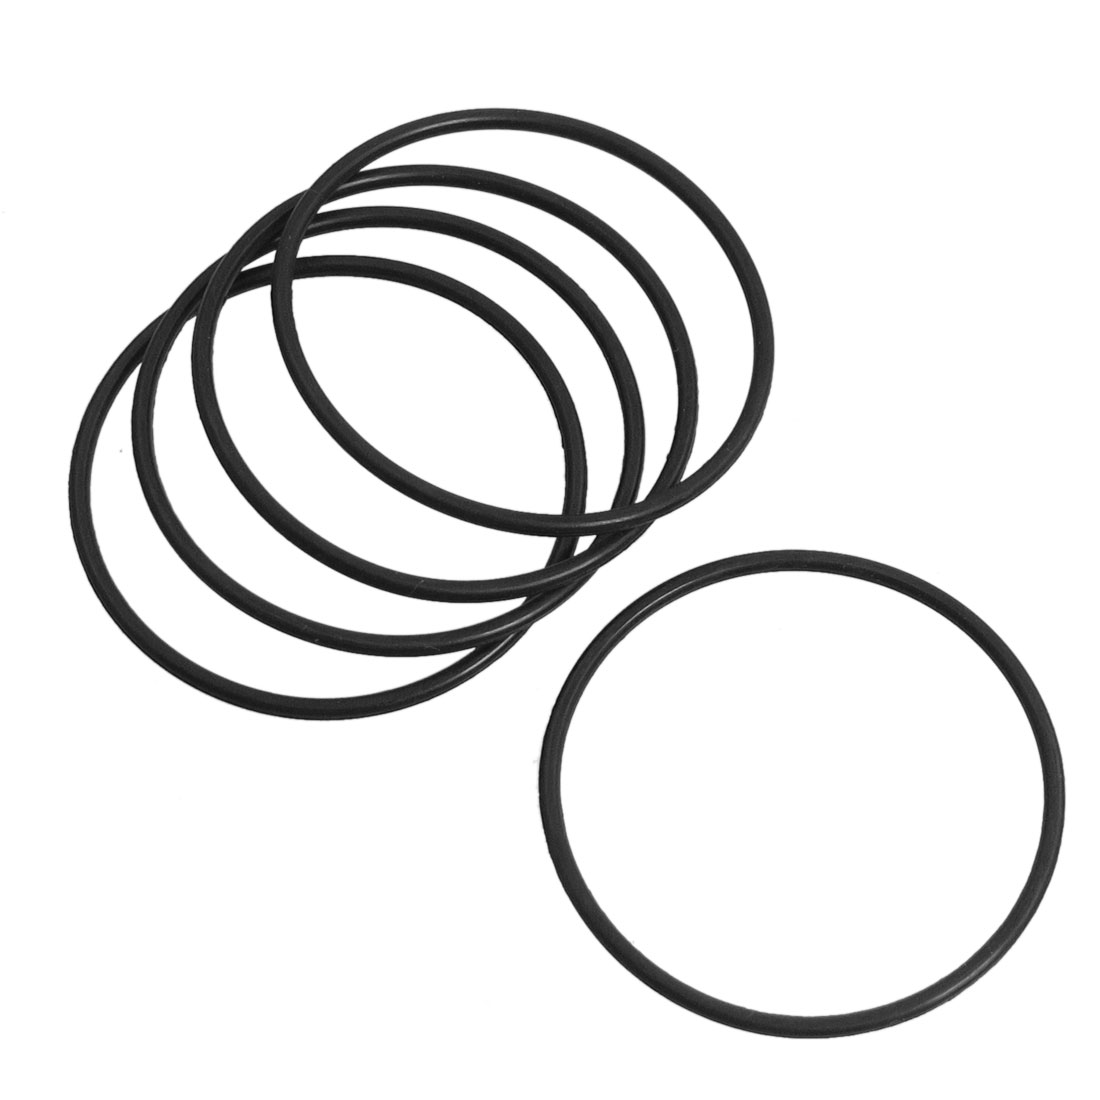 5 Pcs Black 38mm x 1.6mm O Ring Seal Gasket for Dragon 26 Electric Hammer